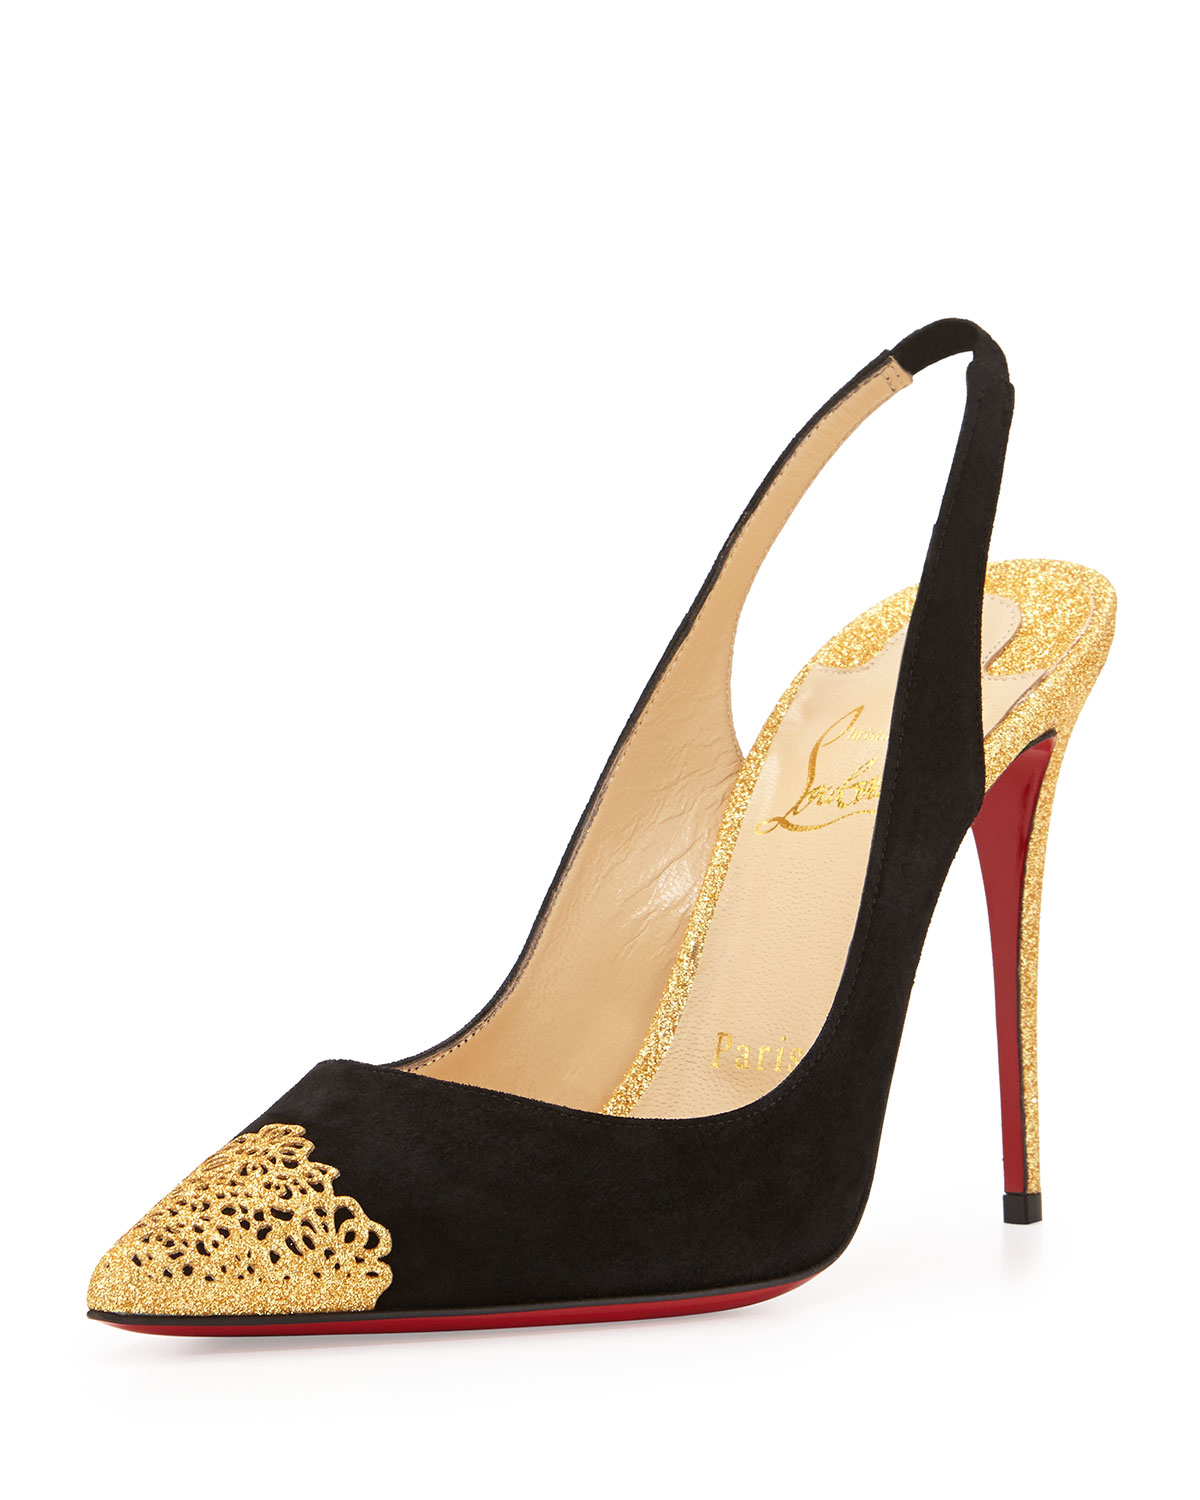 christian louboutin metallic slingback sandals | cosmetics digital ...